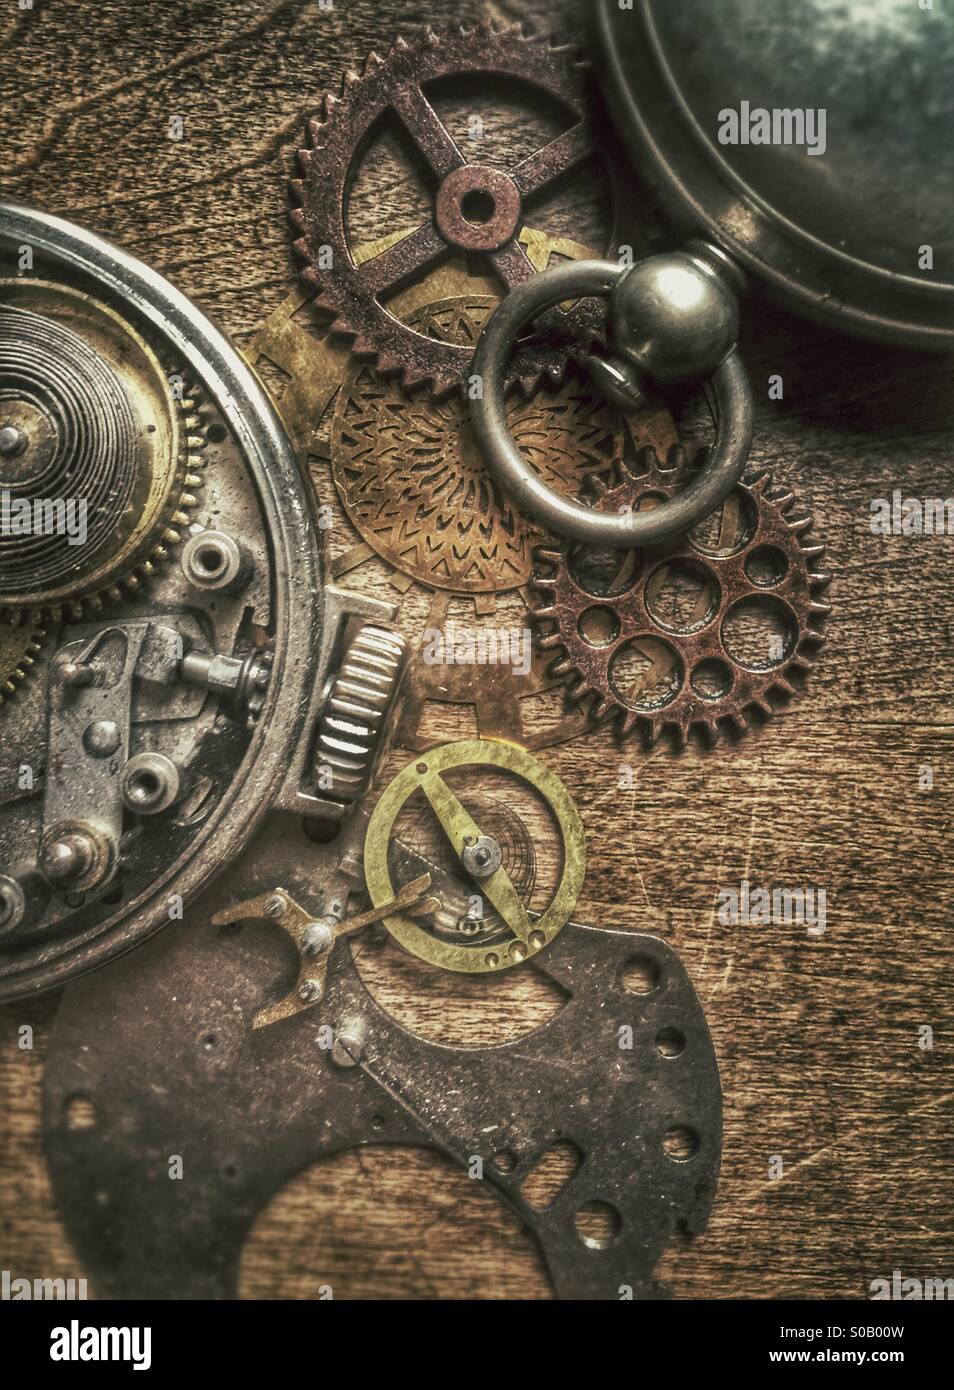 Old pocket watches and parts. - Stock Image